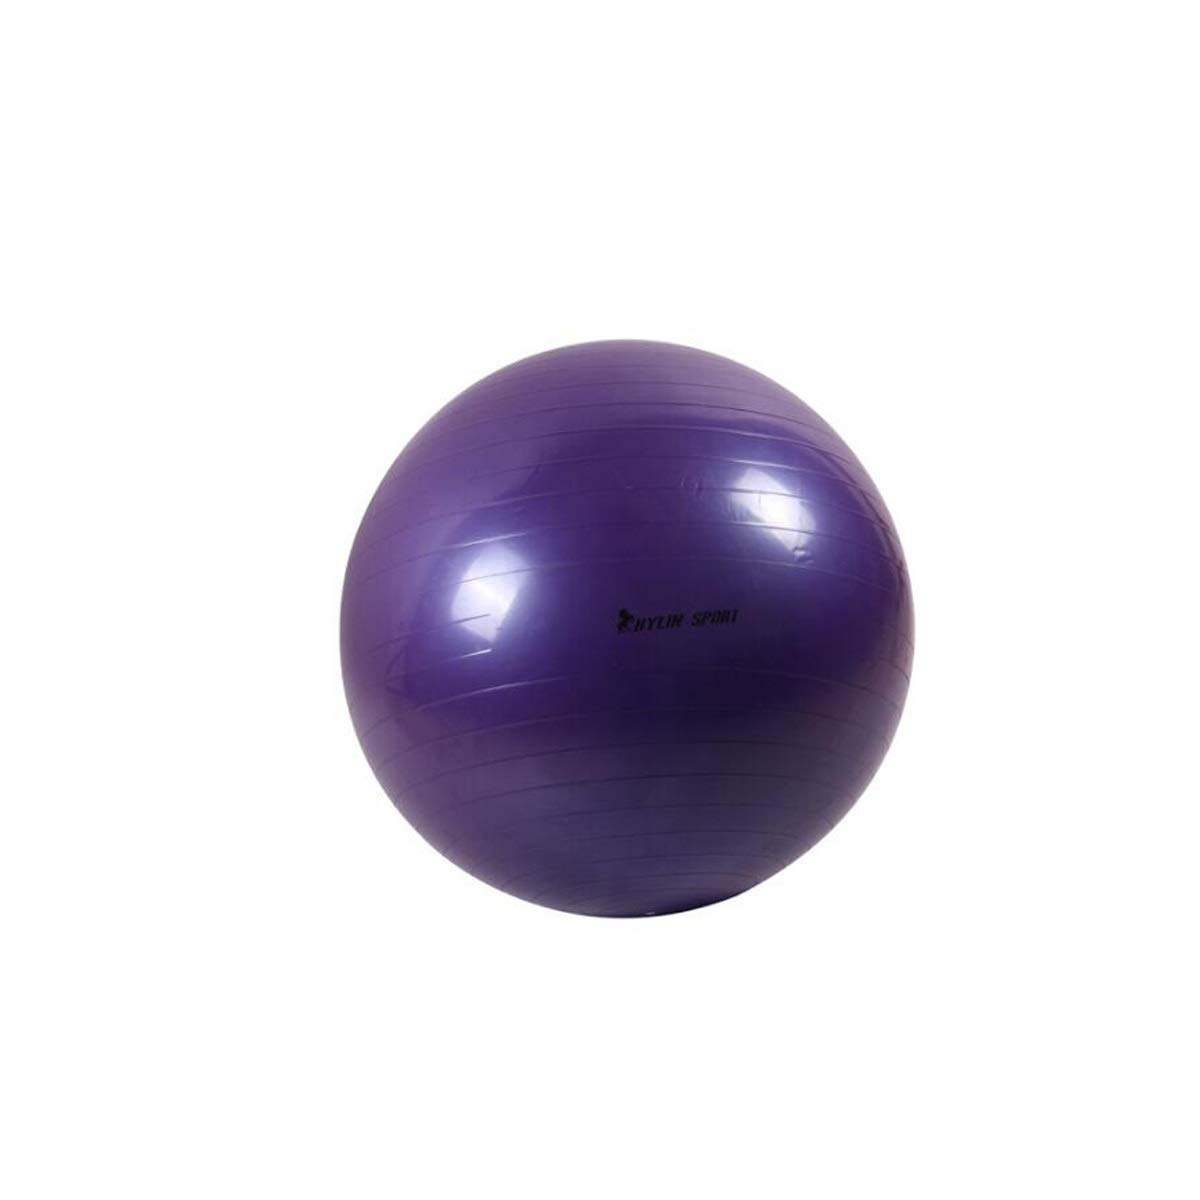 XIONGHAIZI Fitness Ball, Big Yoga Ball, Explosion-Proof Yoga Ball, air Pumping Gas Blue Diameter 85 cm, 75cm, 65cm Exercise, (Color : Purple, Size : 85 cm) by XIONGHAIZI